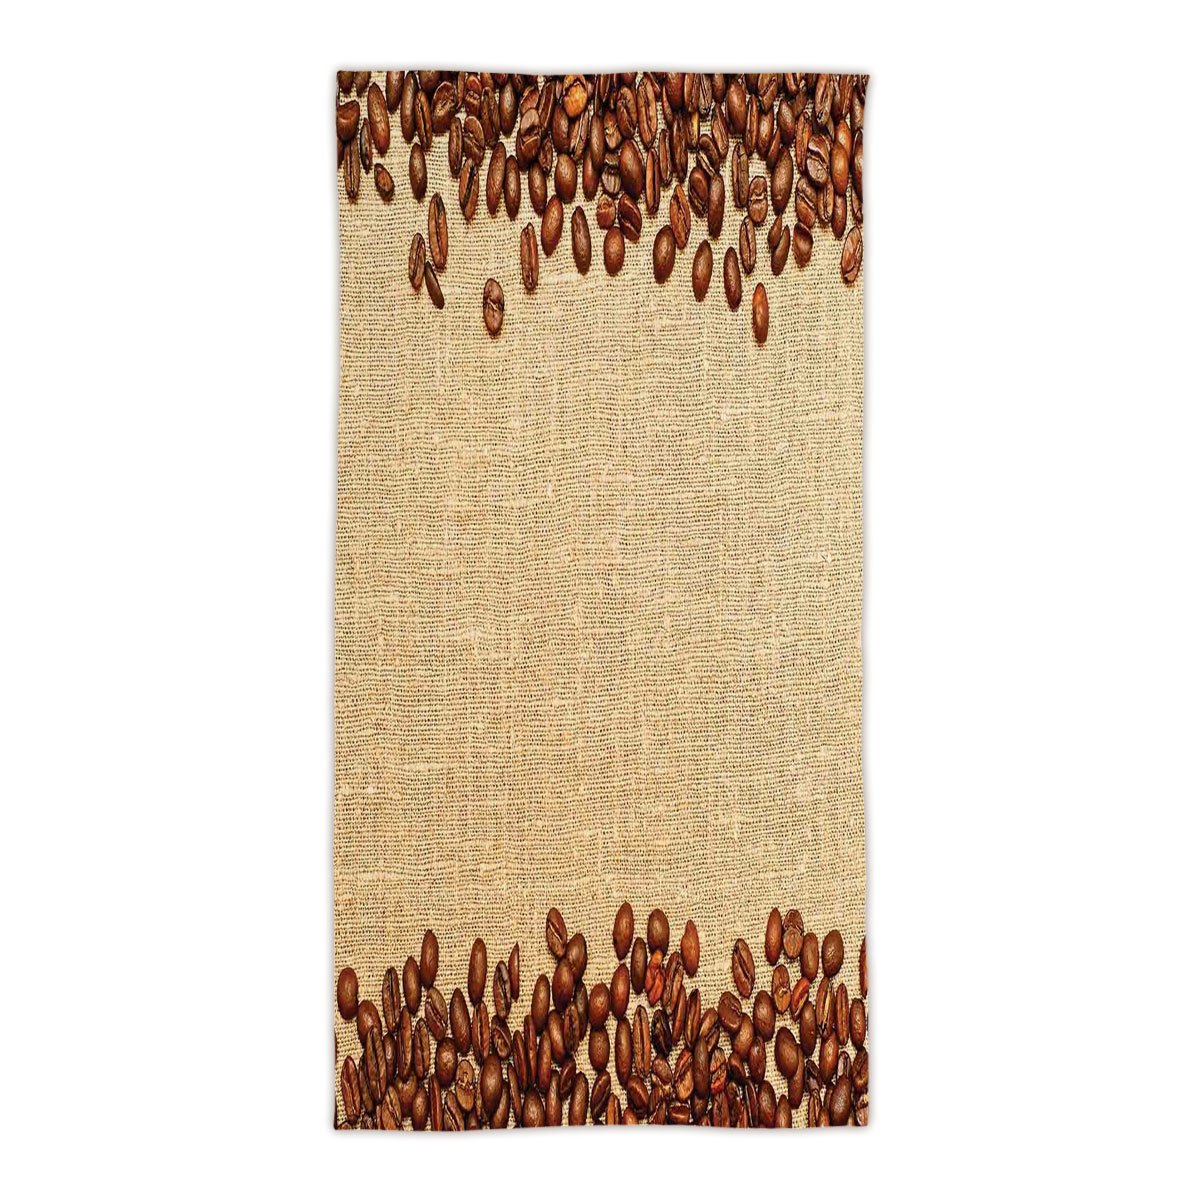 idouxi 31.49'' W x 62.99'' L Cotton Microfiber Bath/Hand Towel,Modern,Coffee Beans Backround Home and Cafe Designer Decoration Collection Straw,Brown Cream,Ultra Soft,For Hotel Spa Beach Pool Bath